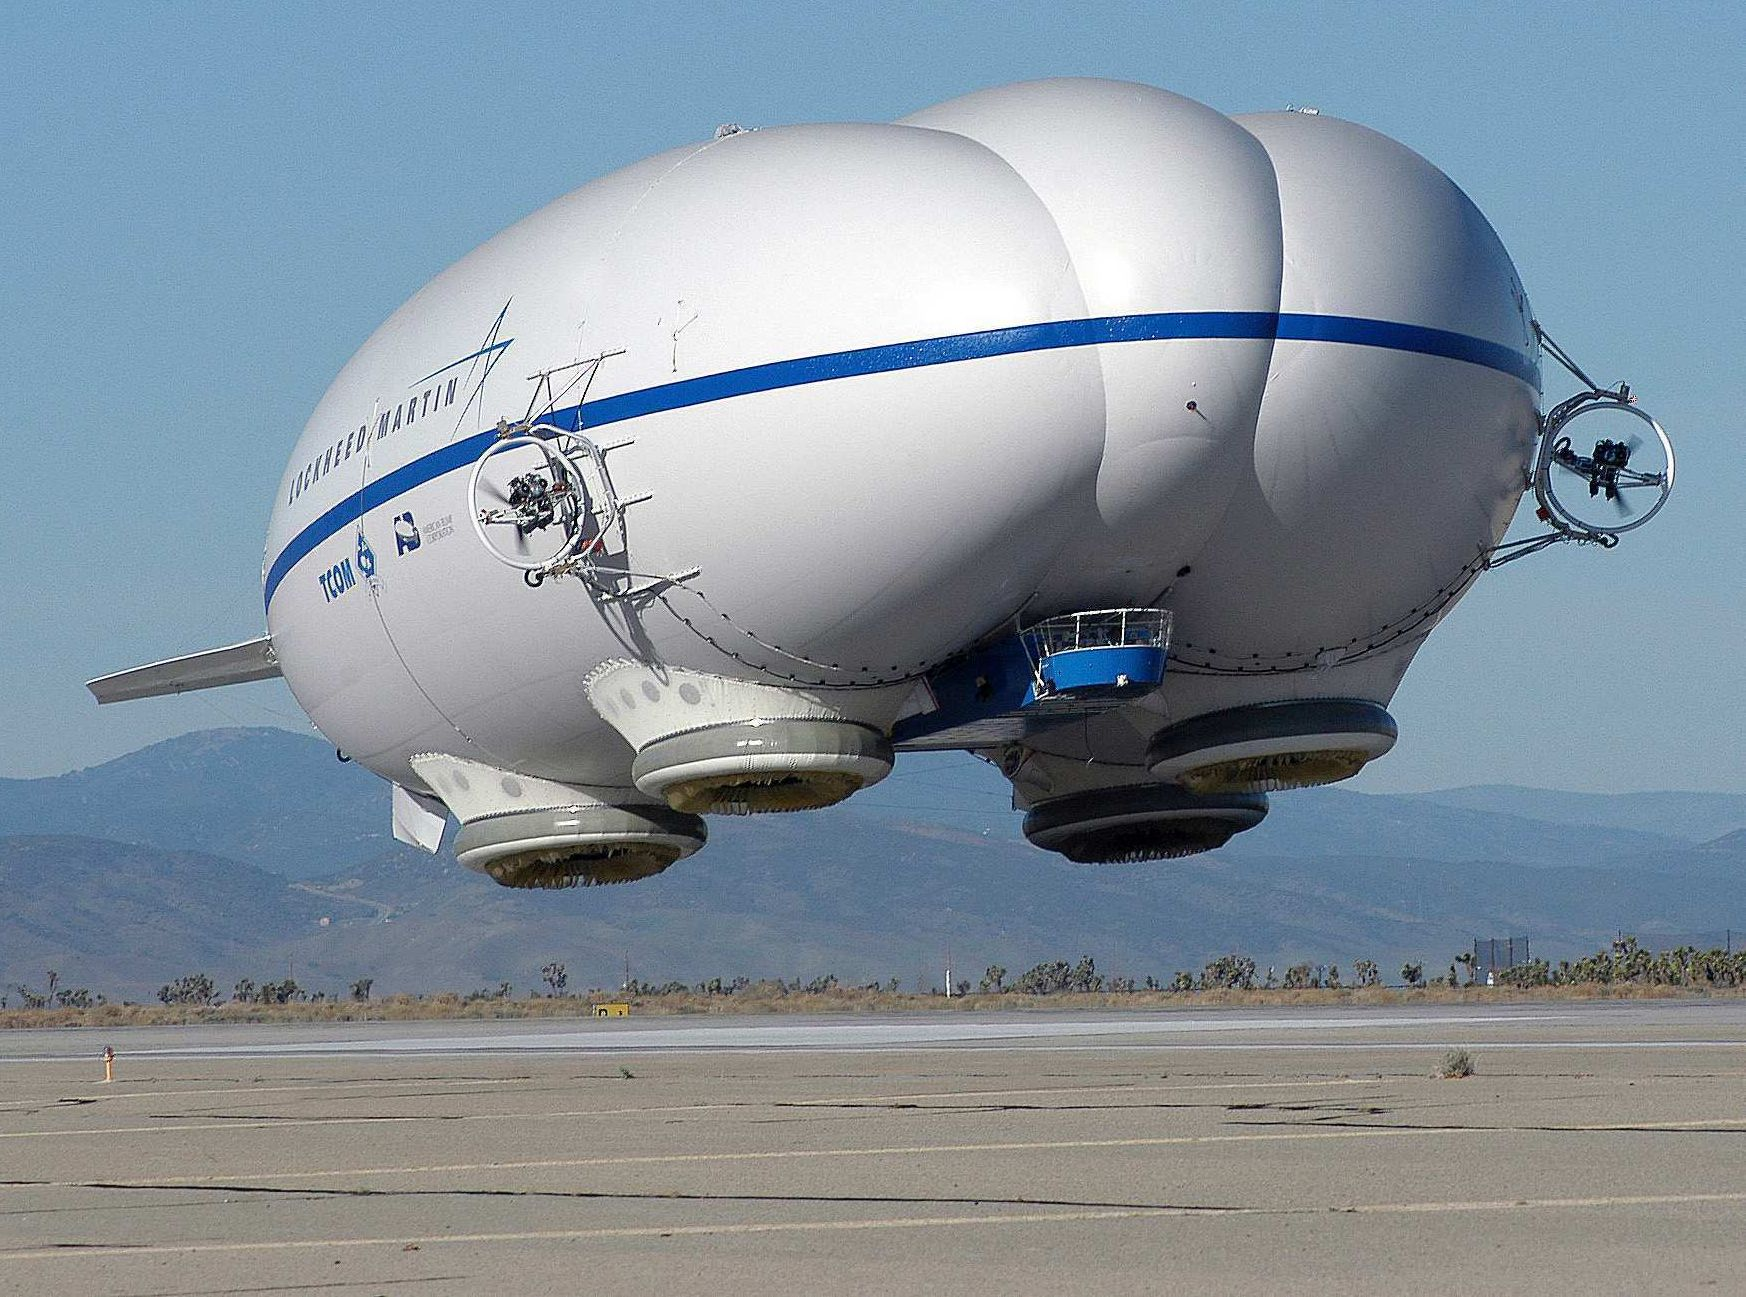 14 Most Unusual Man Made Aircraft That Look Like UFOs